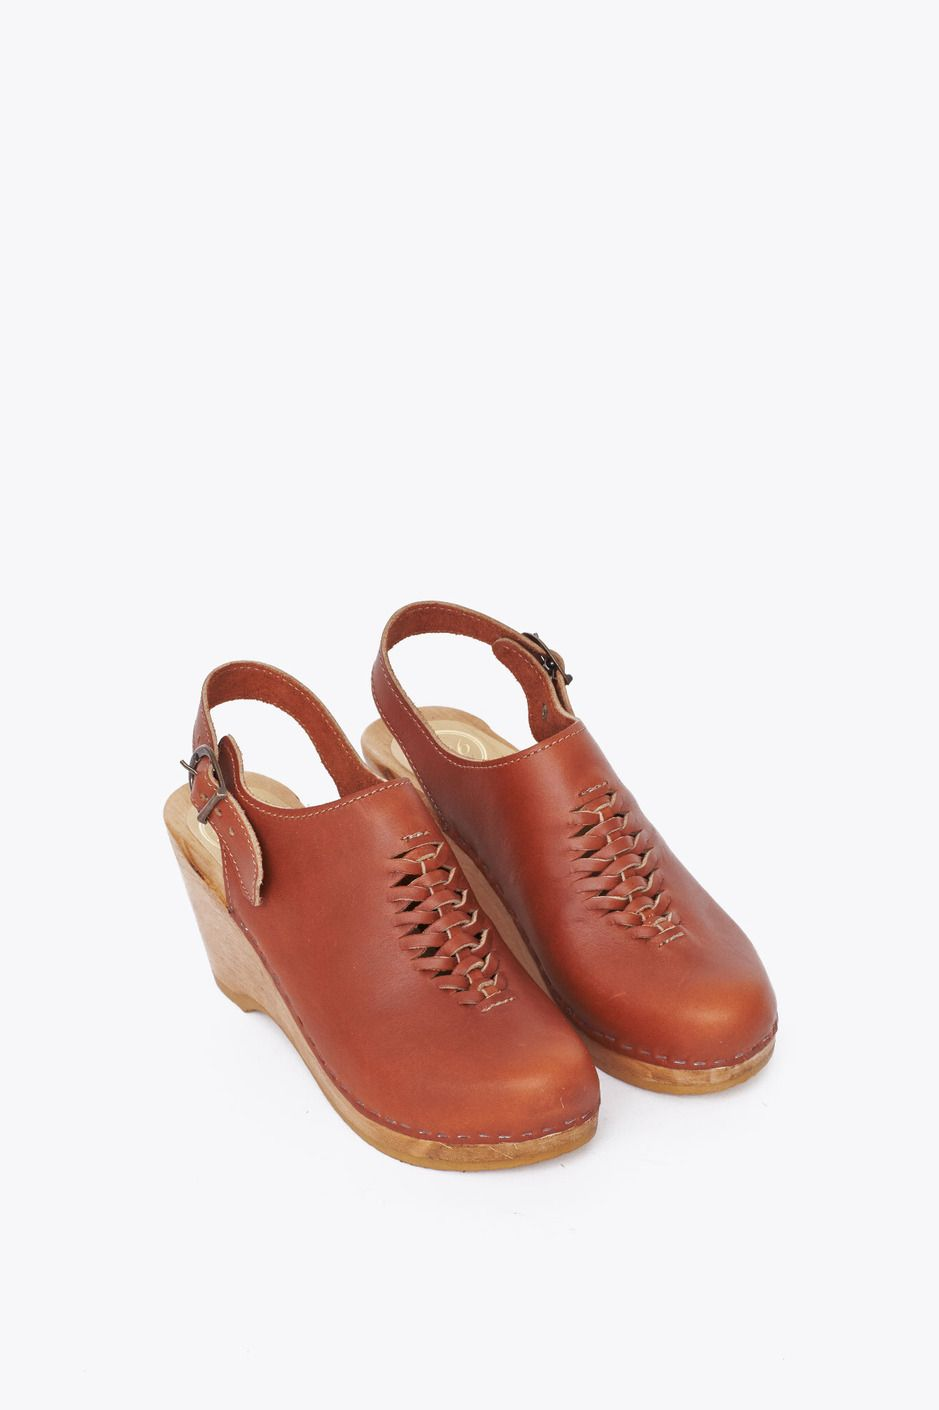 websites online cheap sale professional No.6 Leather Slingback Wedges cheap collections prices cheap price uyHMsjx